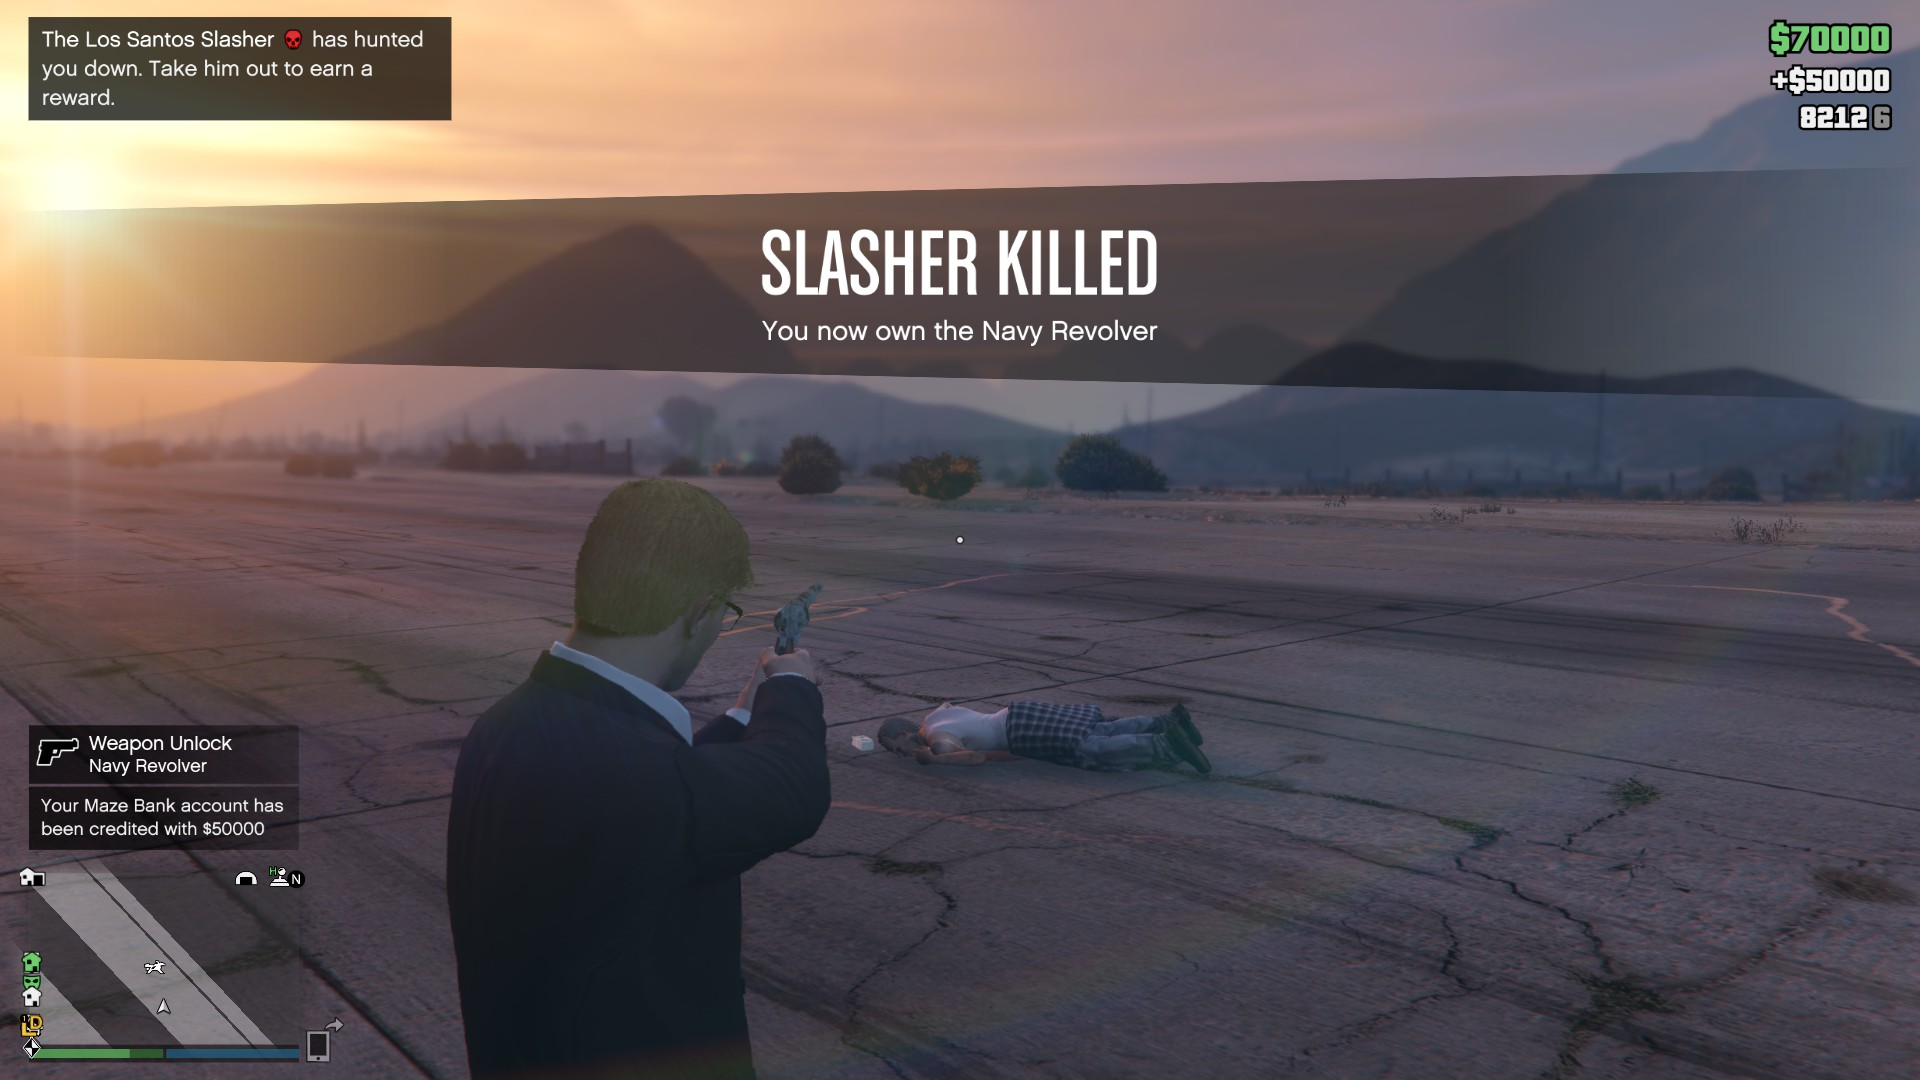 1618053220 366 70 GTA Online: How to unlock the Navy Revolver and find all the Los Santos Slasher clues